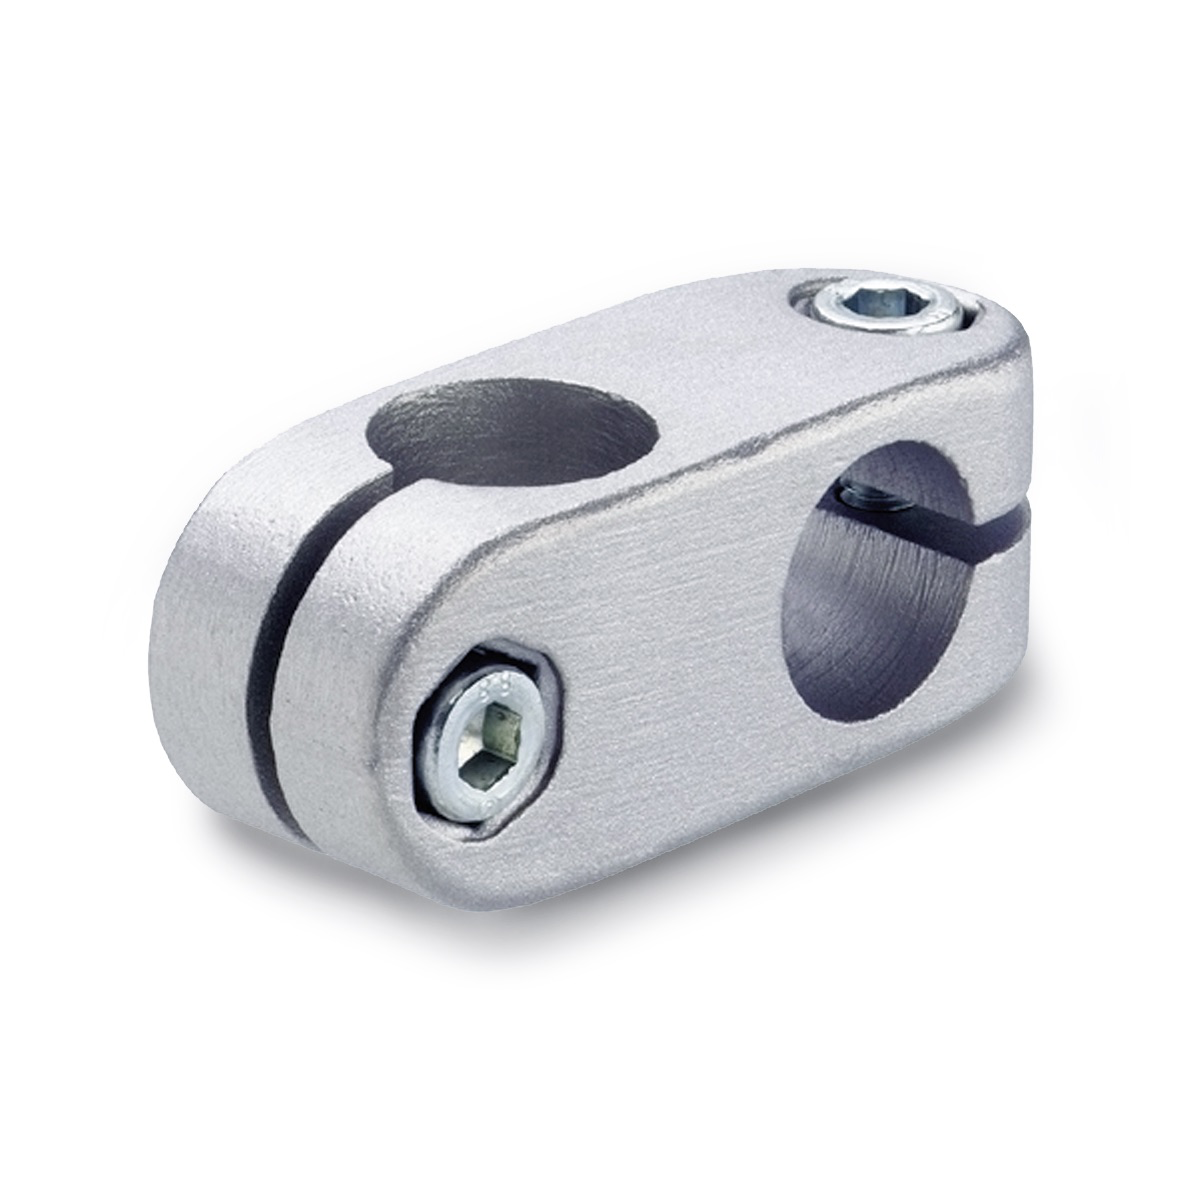 Two-way Connector Clamps GN131, Aluminium, Optional Plastic Coating